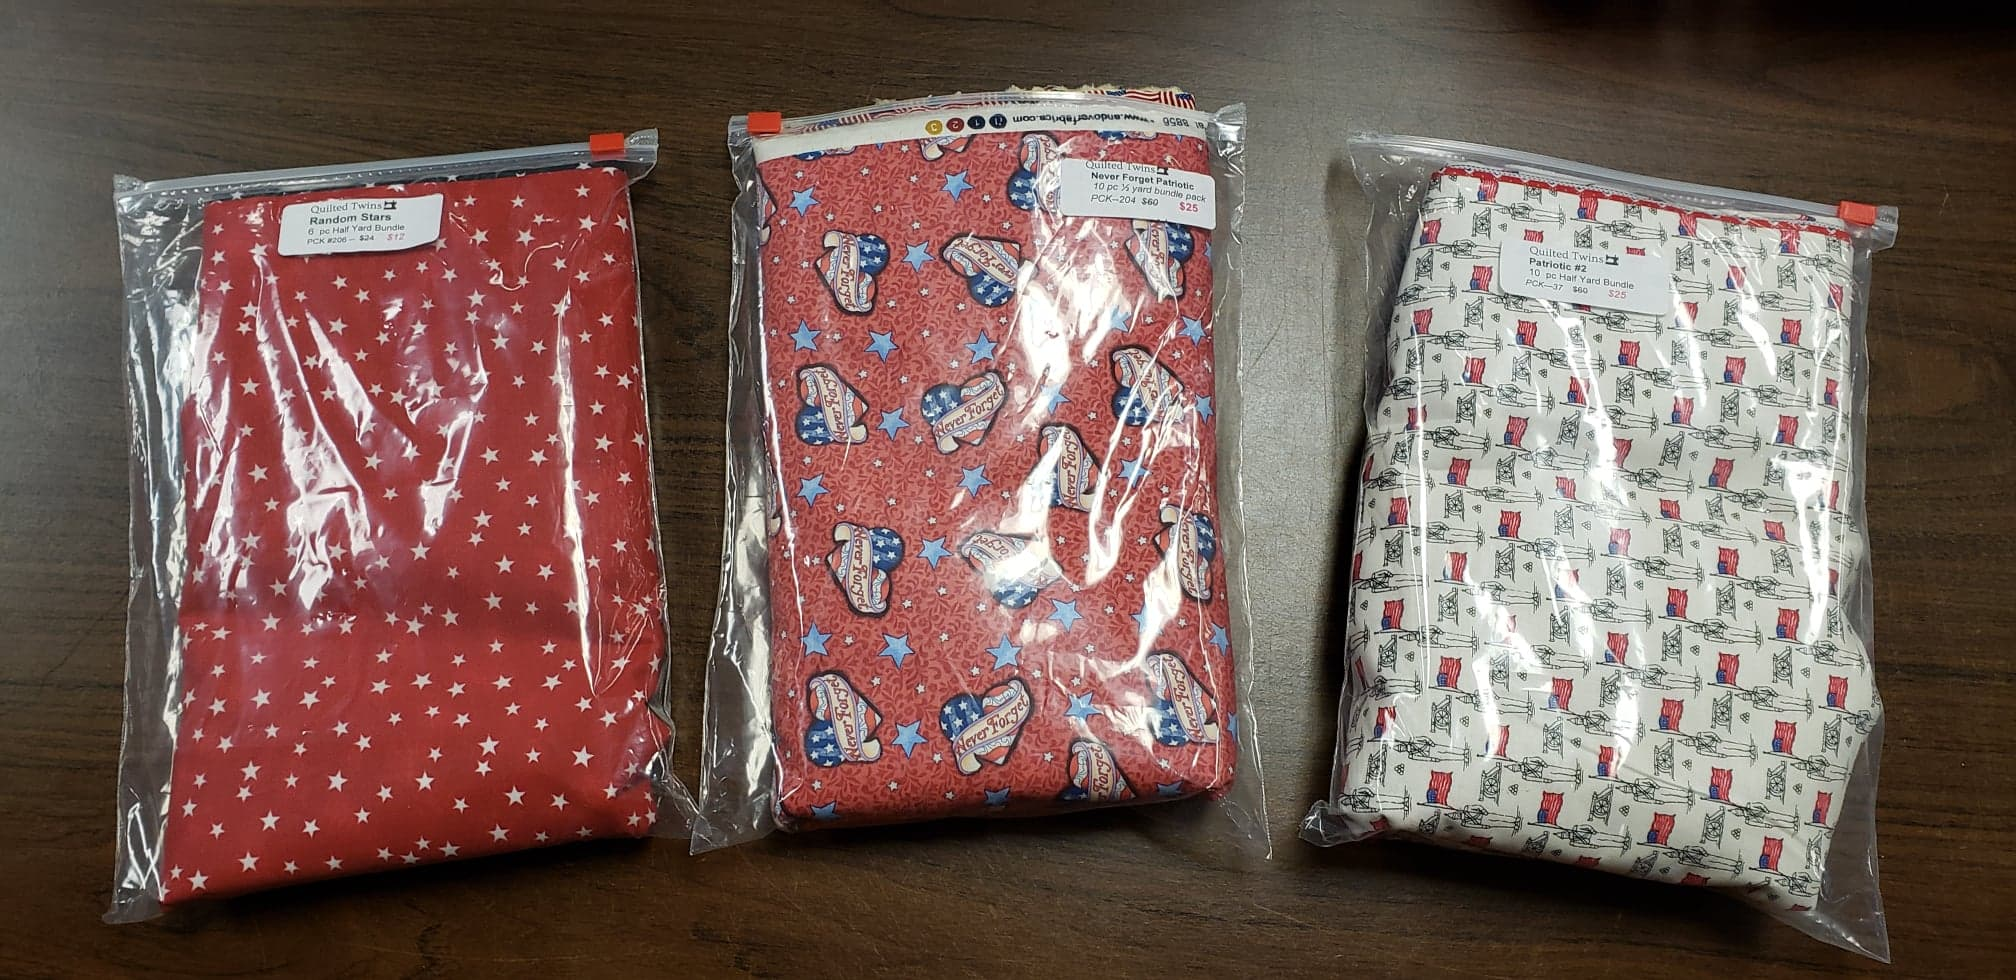 The packs are called  Random Stars ,  Never Forget Patriotic , and  Patriotic #2.  They are worth checking out. just click on the links provided and you will see a close up of the fabrics provided as well as the price.